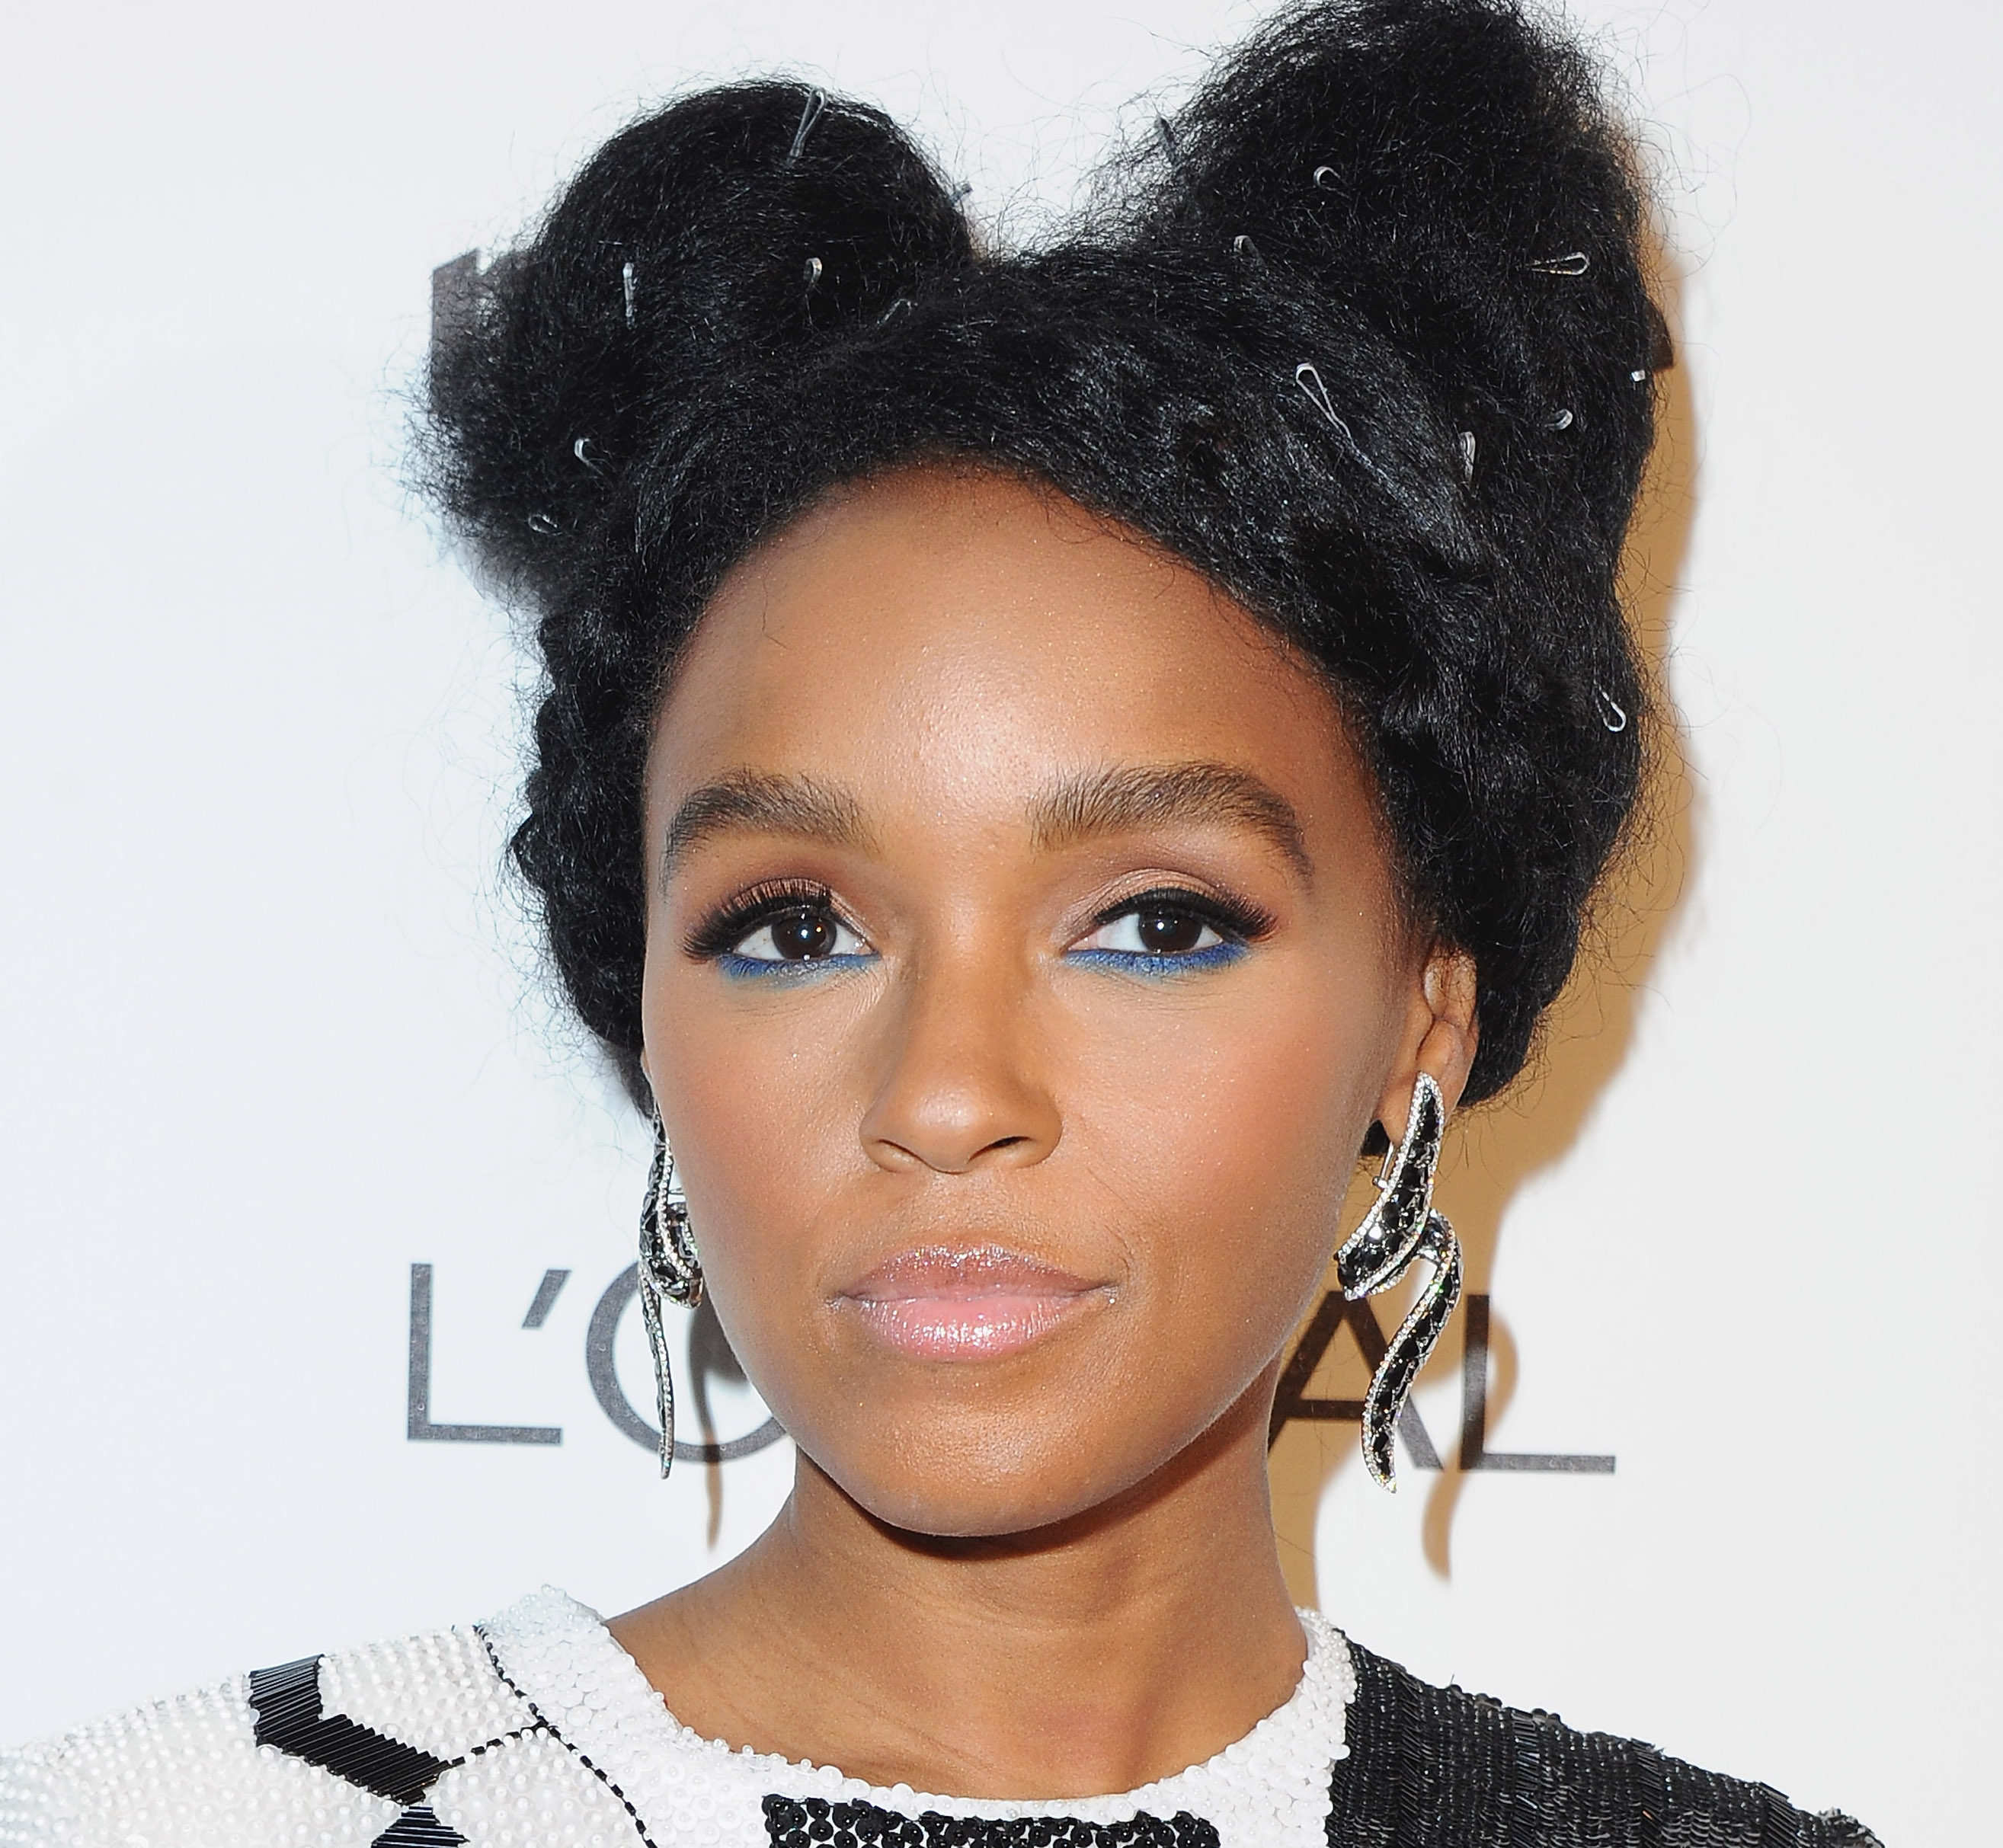 Janelle Monáe's NASA-themed photoshoot shows her blossoming into a space queen